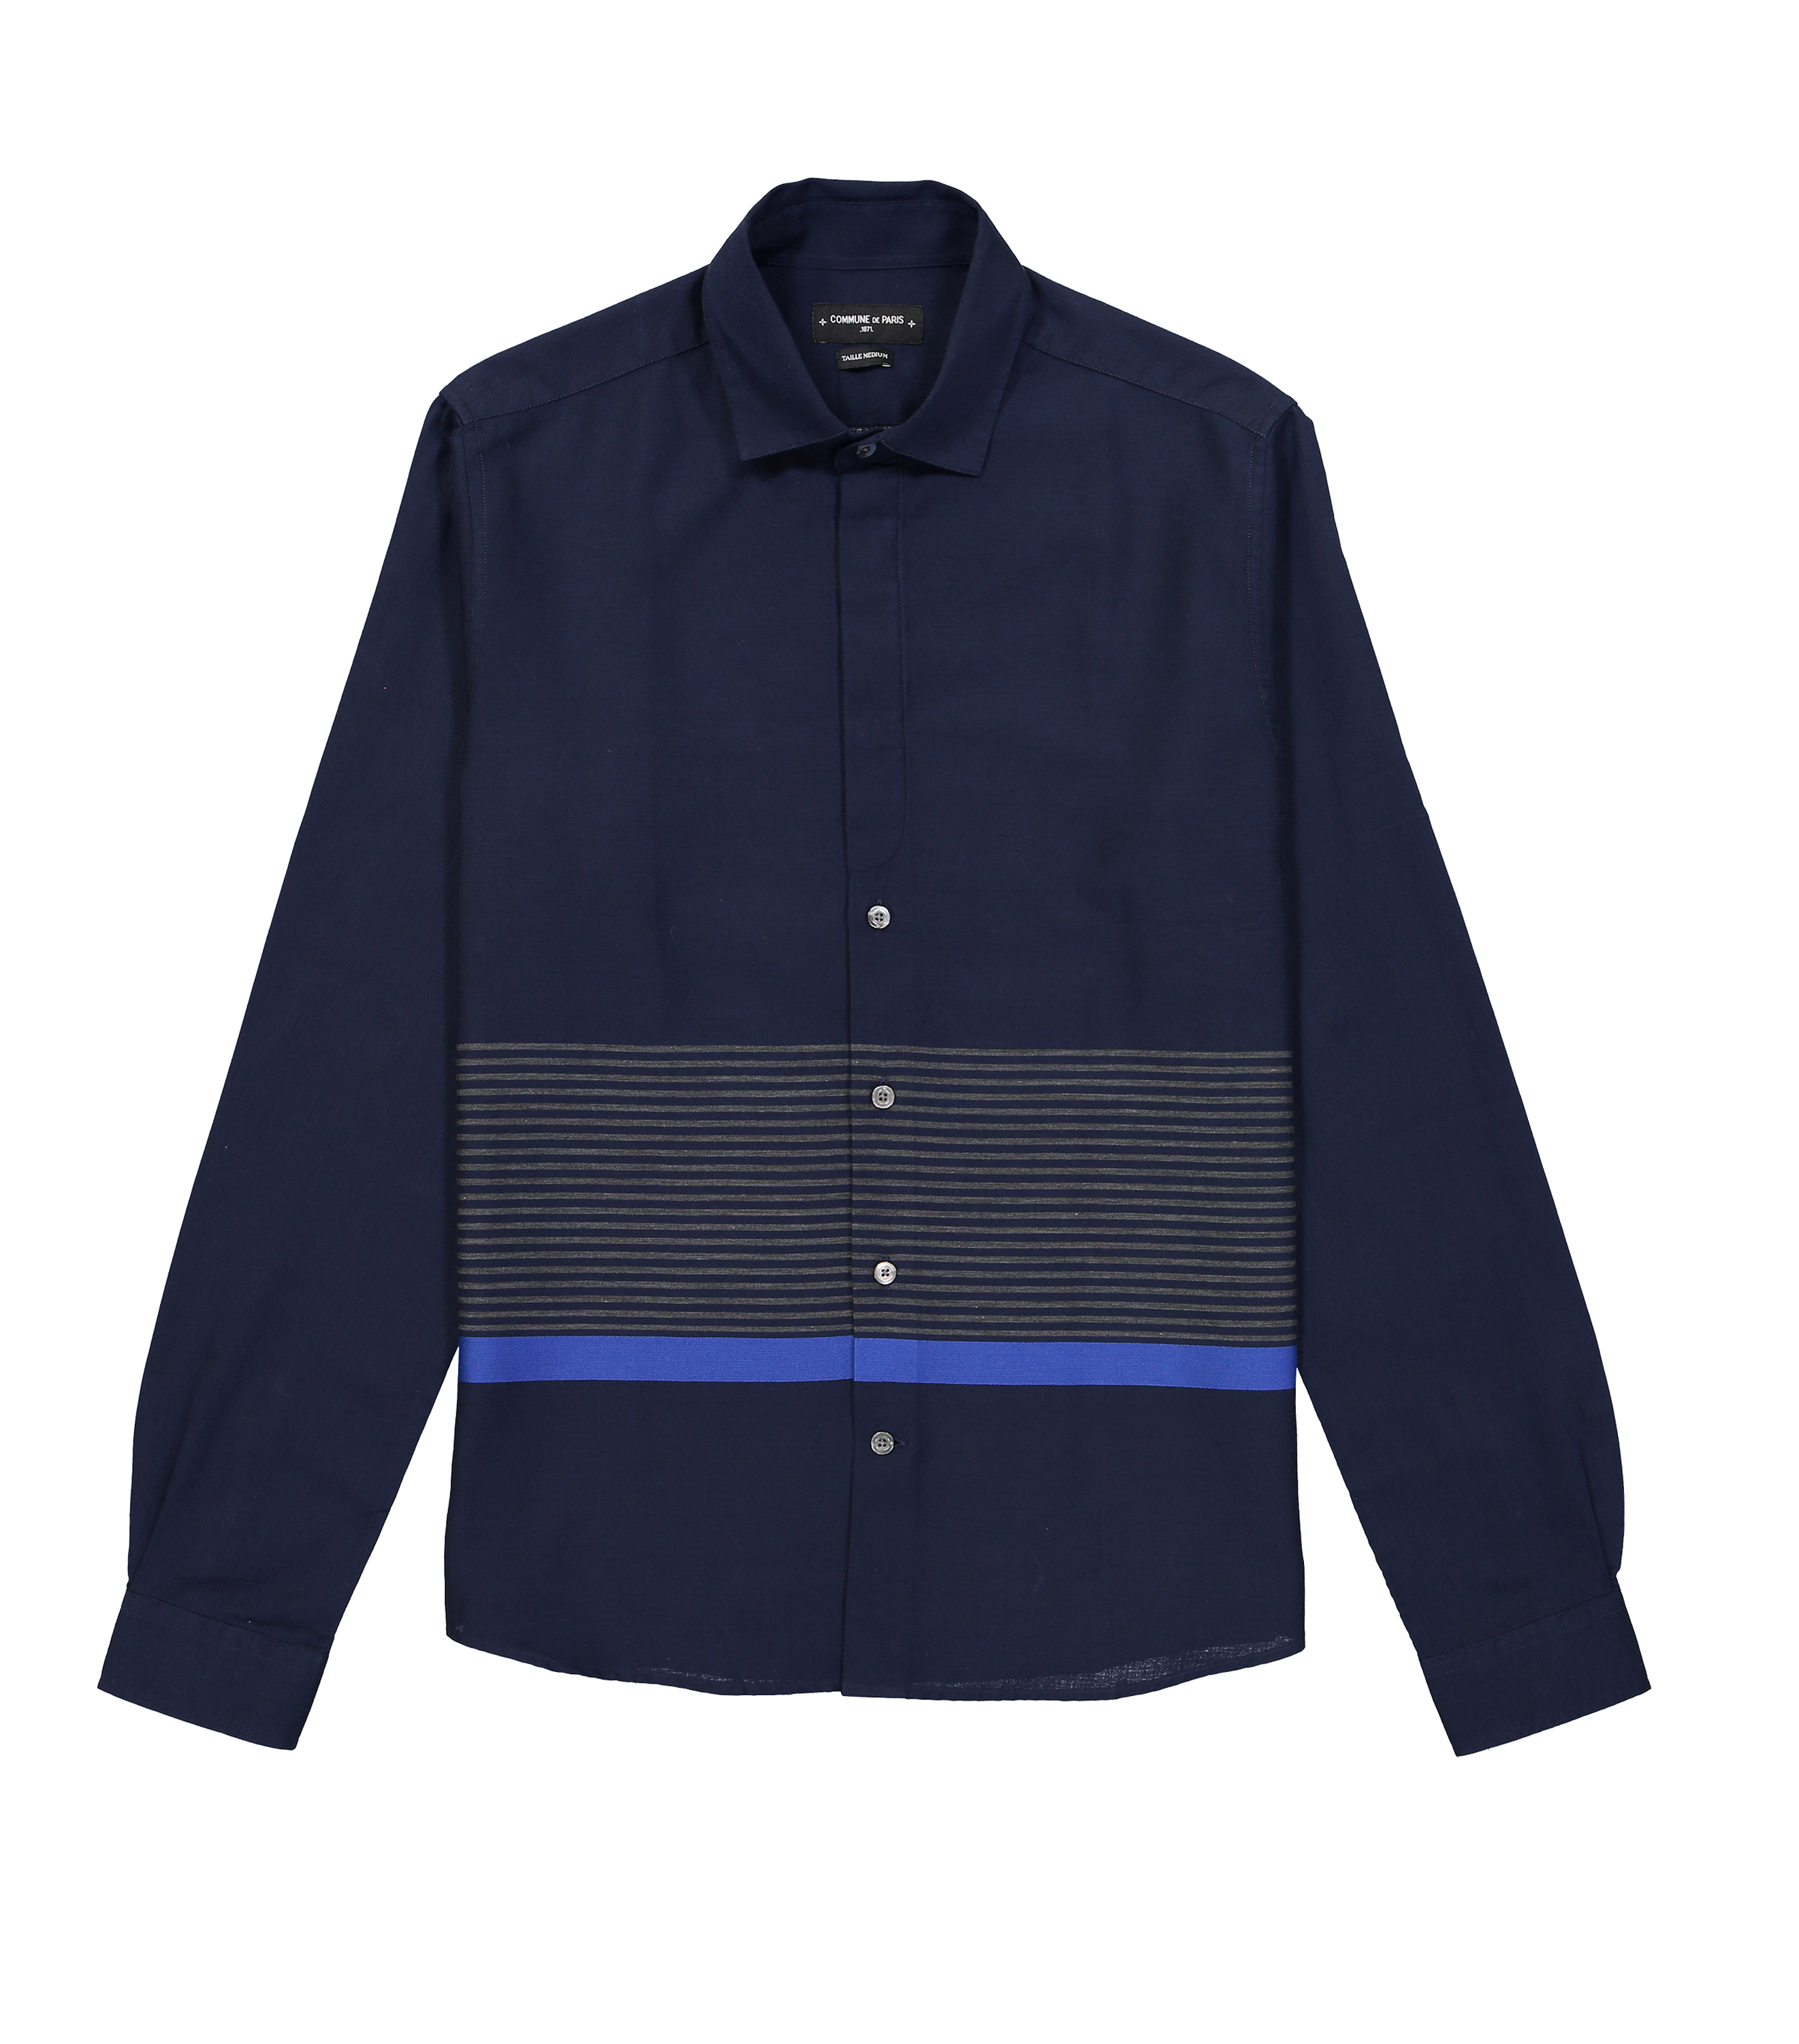 SHIRT VUILLARD - Navy stripes